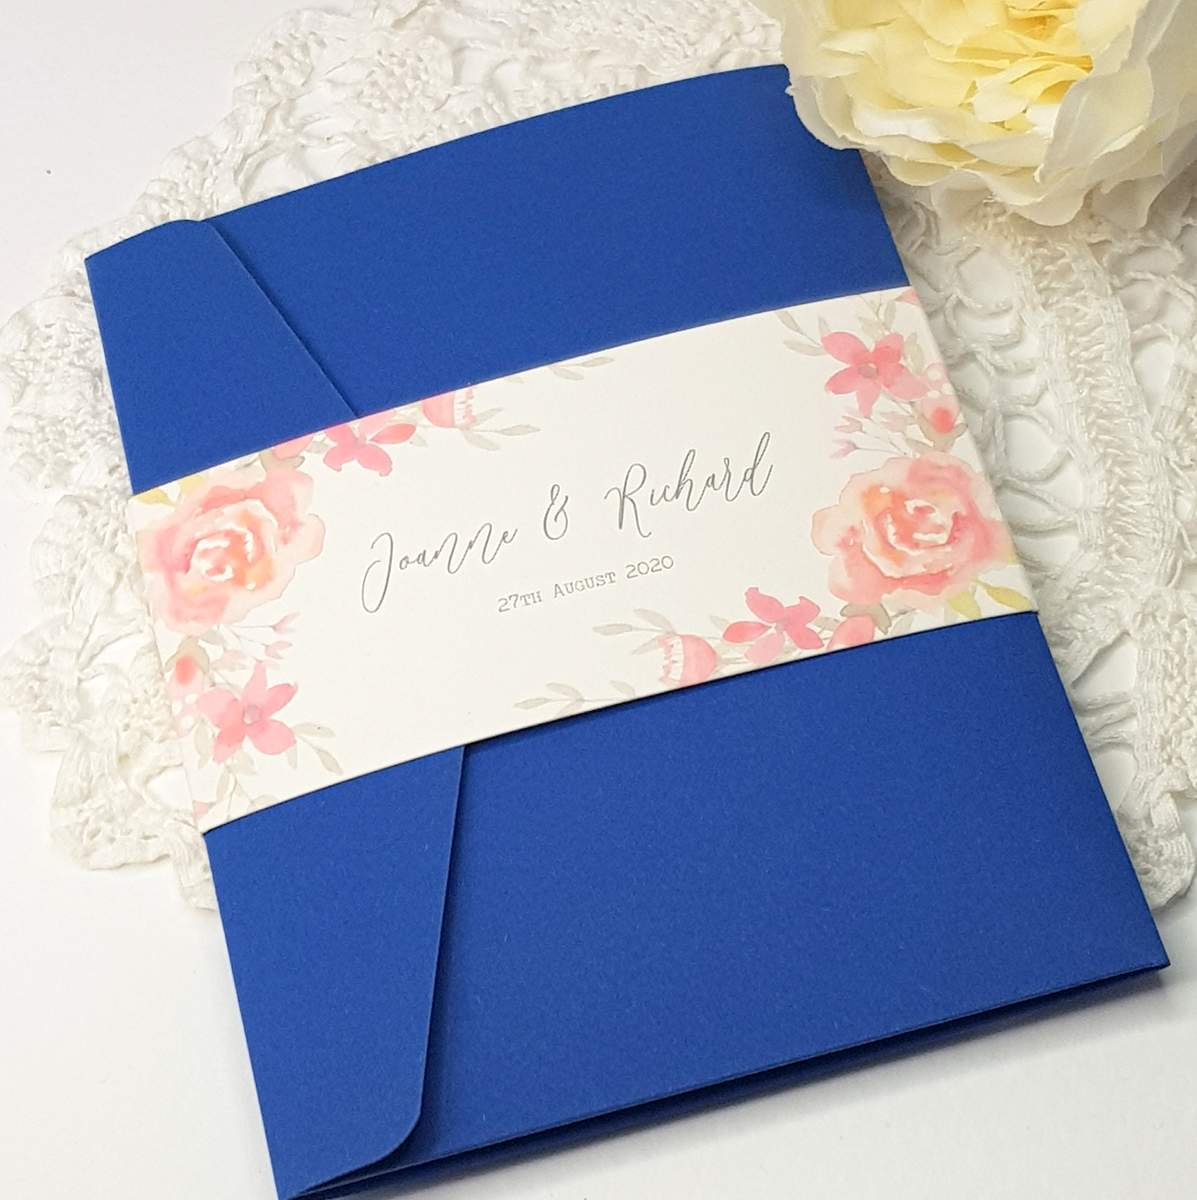 blue pocketfold wedding invitation with a bellyband featuring coral roses